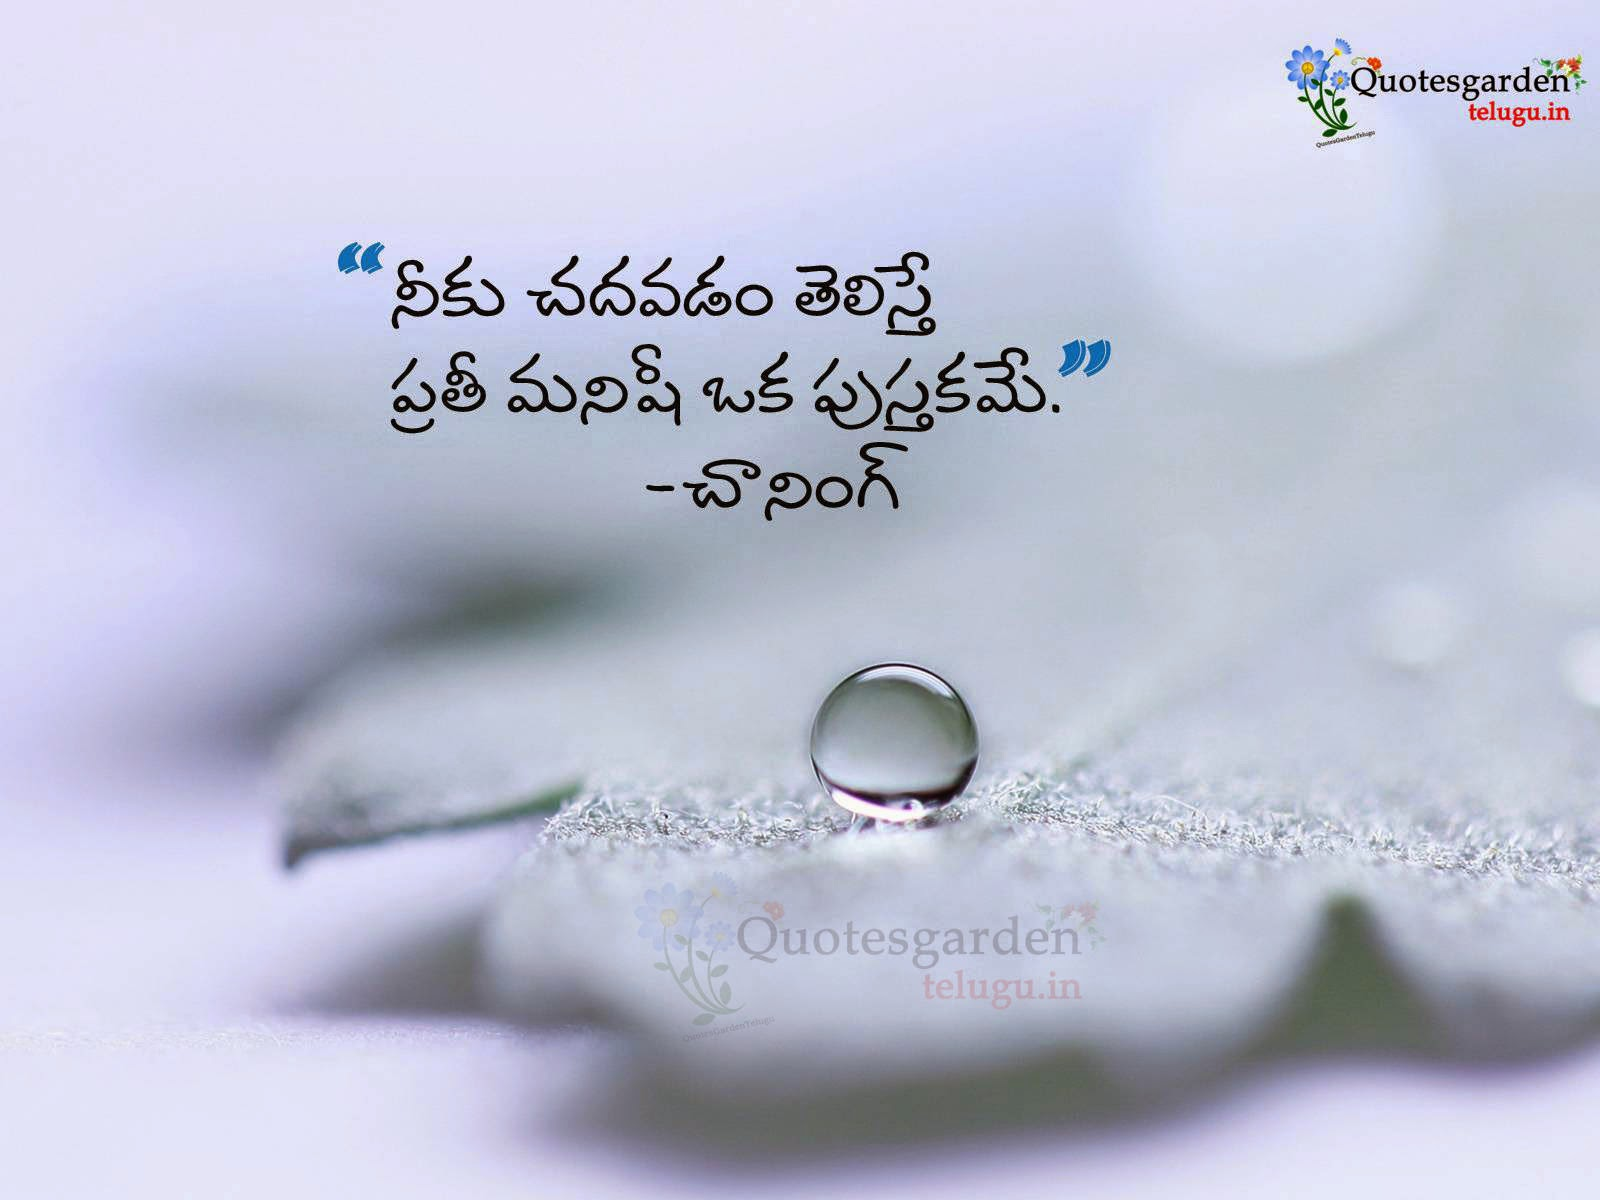 Best Telugu Inspirational Quotes Top Telugu Quotes Nice Telugu